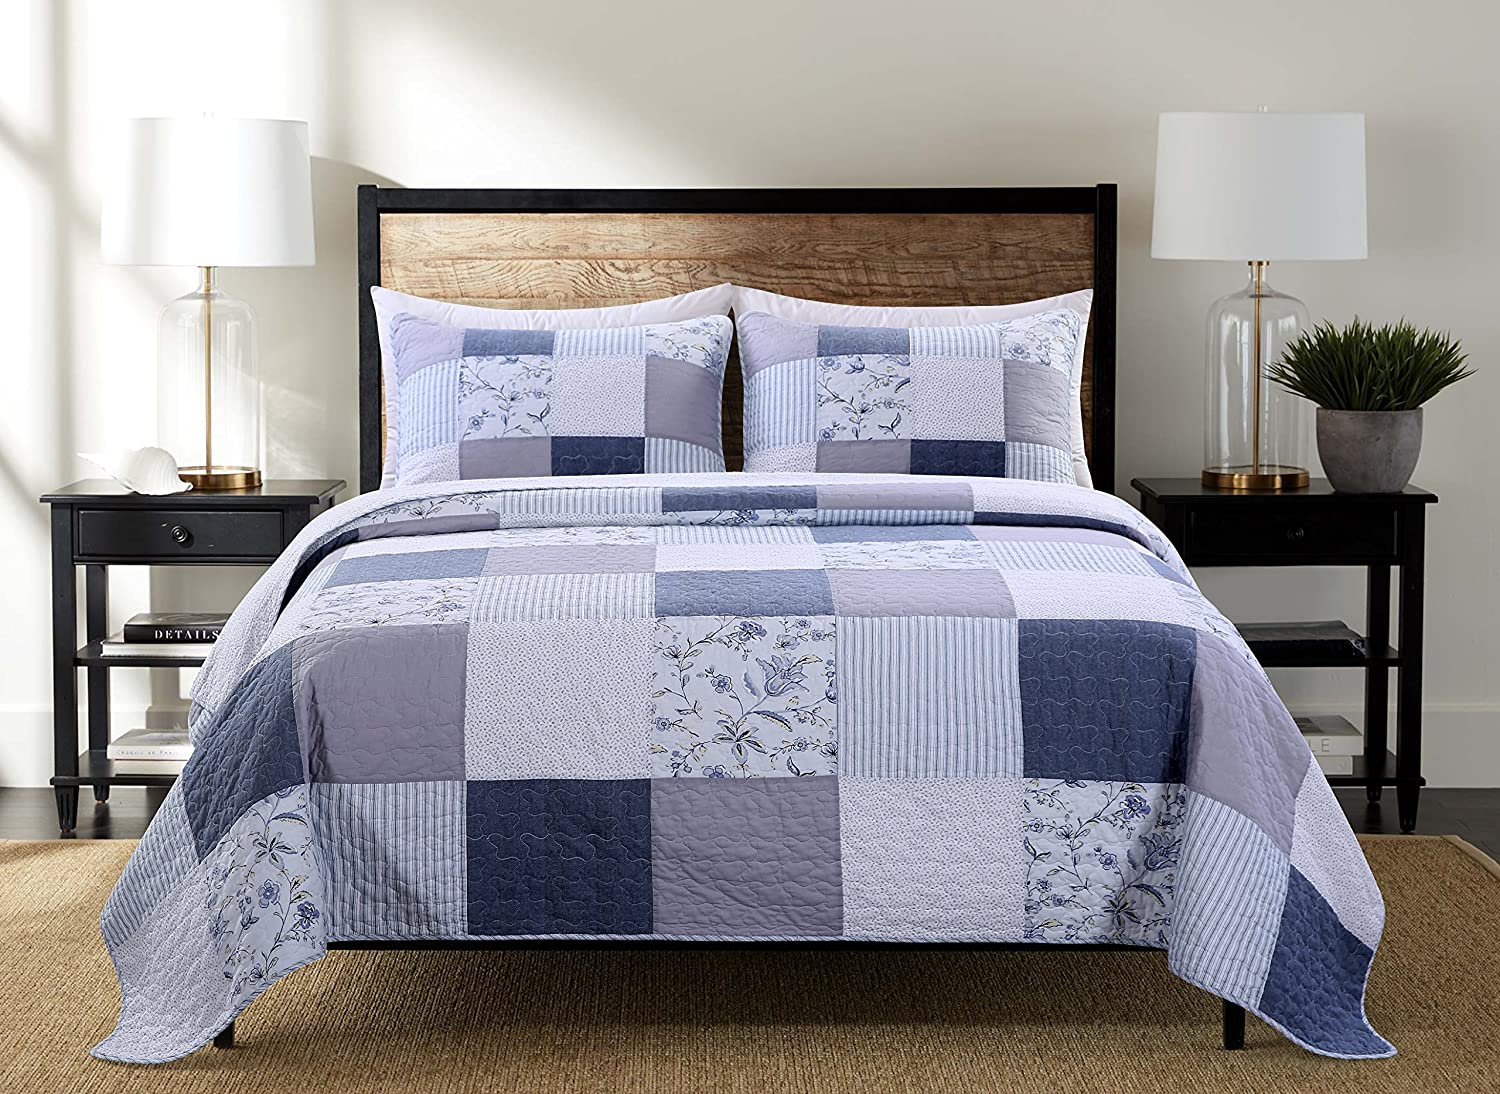 SLPR Coastal Dream 3-Piece Real Patchwork Cotton Quilt Set (Queen)   with 2 Shams Pre-Washed Reversible Machine Washable Lightweight Bedspread Coverlet